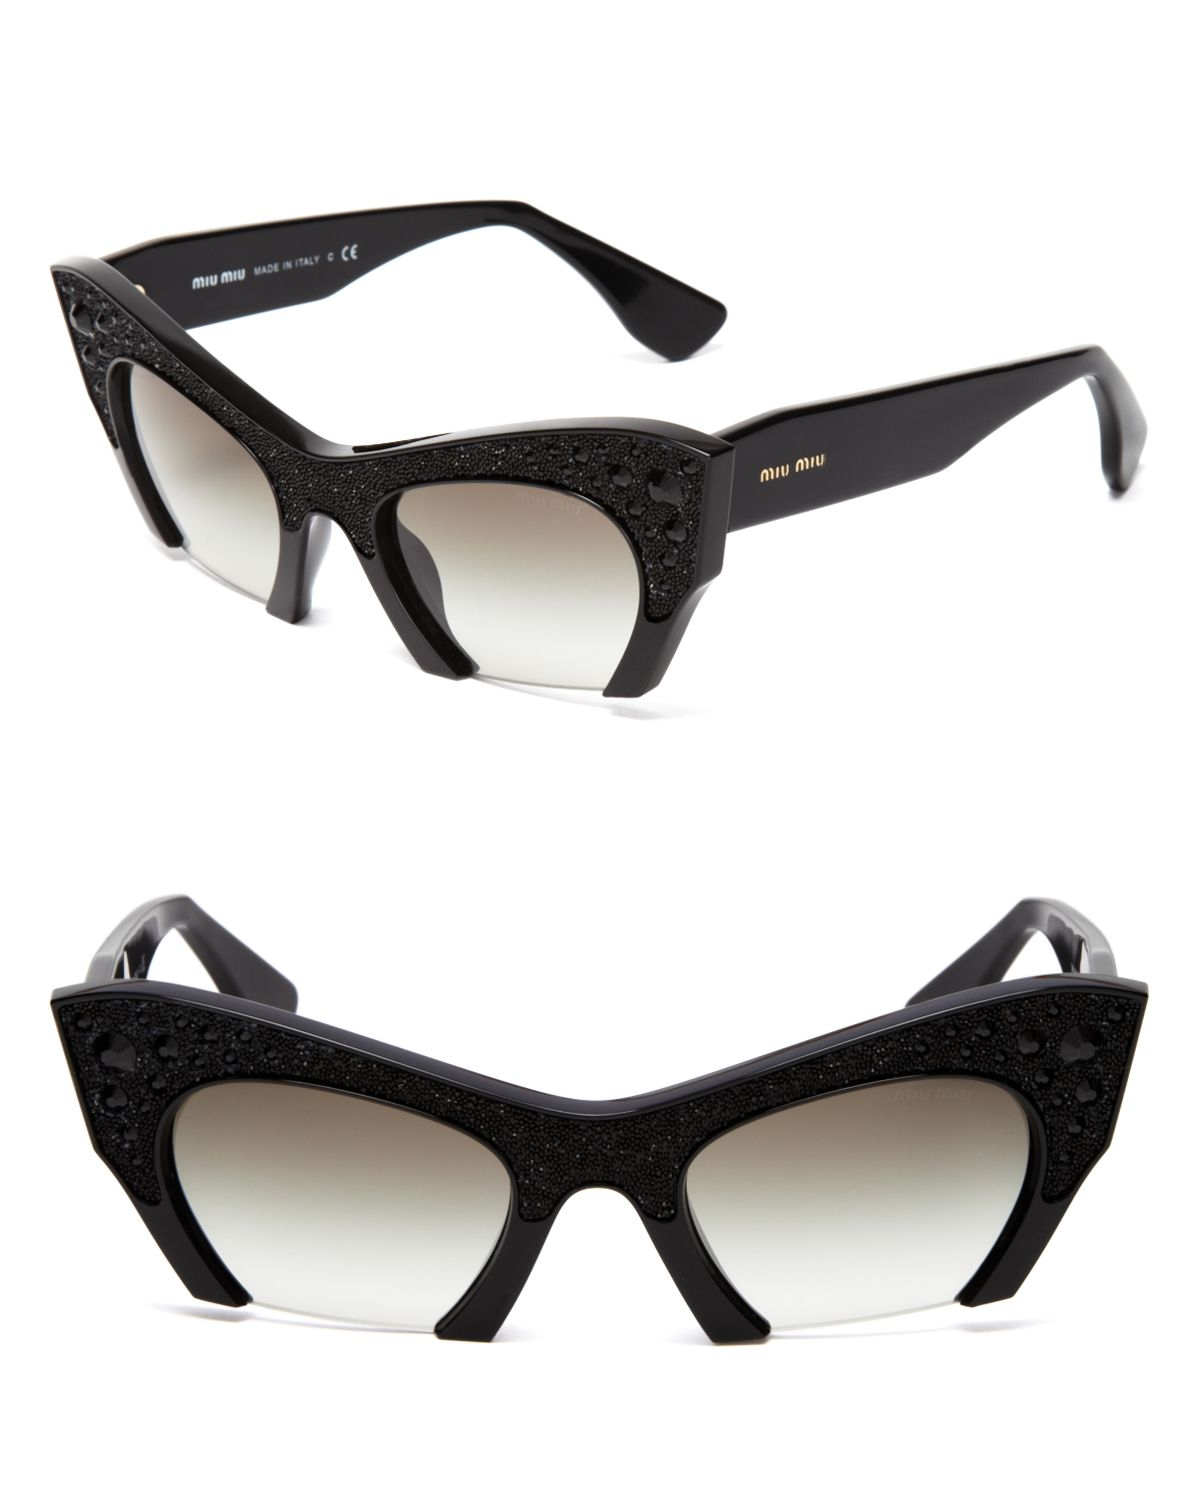 37fa6b656f2 Lyst - Miu Miu Semi-Rimless Embellished Cat Eye Sunglasses in Black